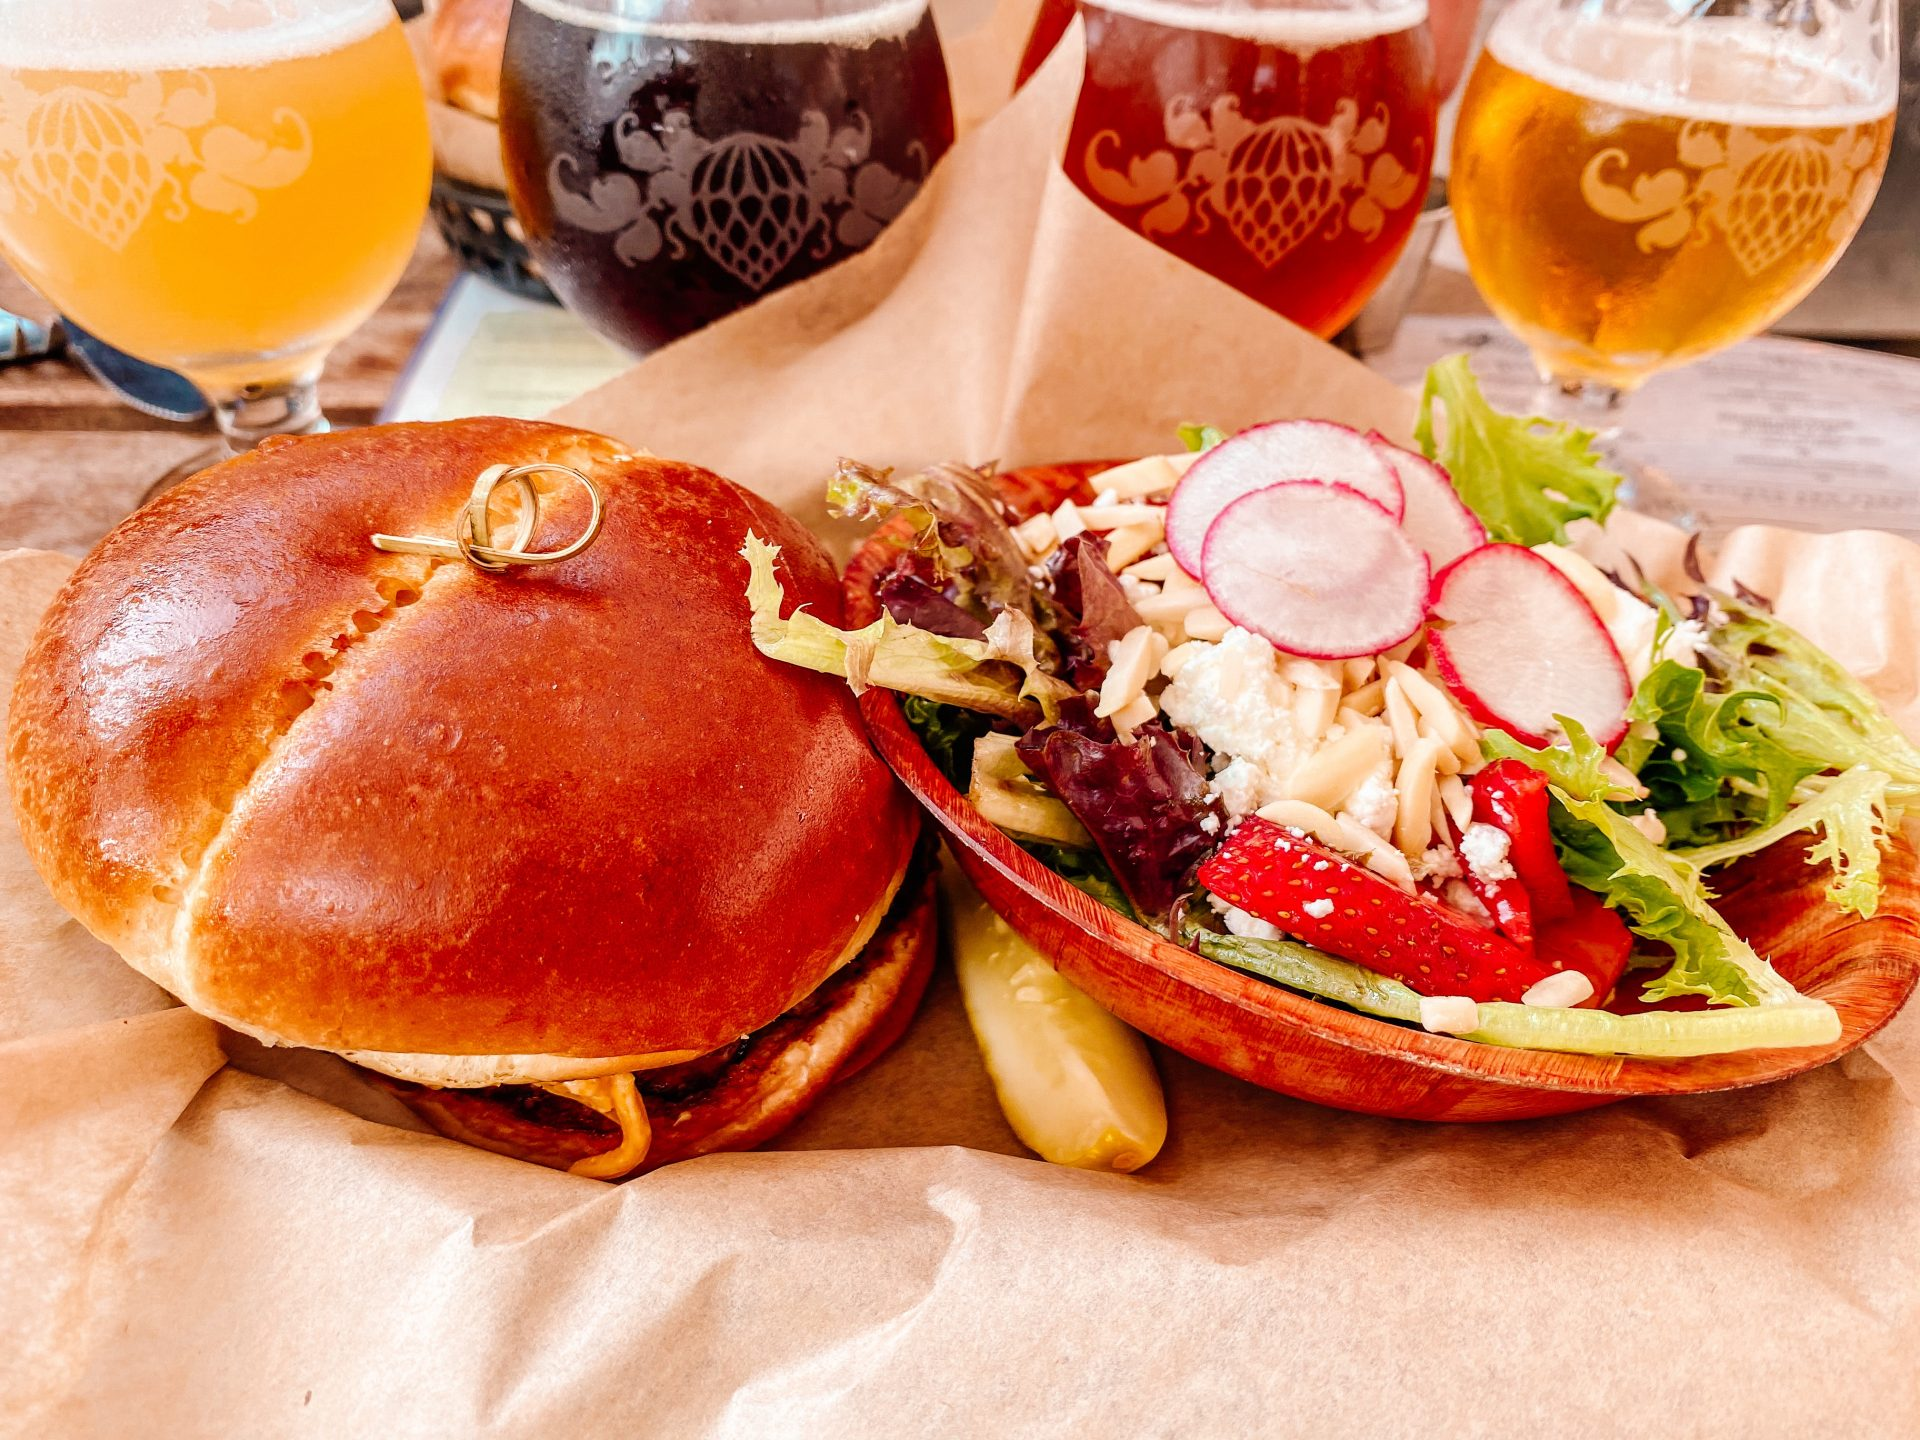 wicked weed brewery beer flight and a burger and side salad in asheville north carolina